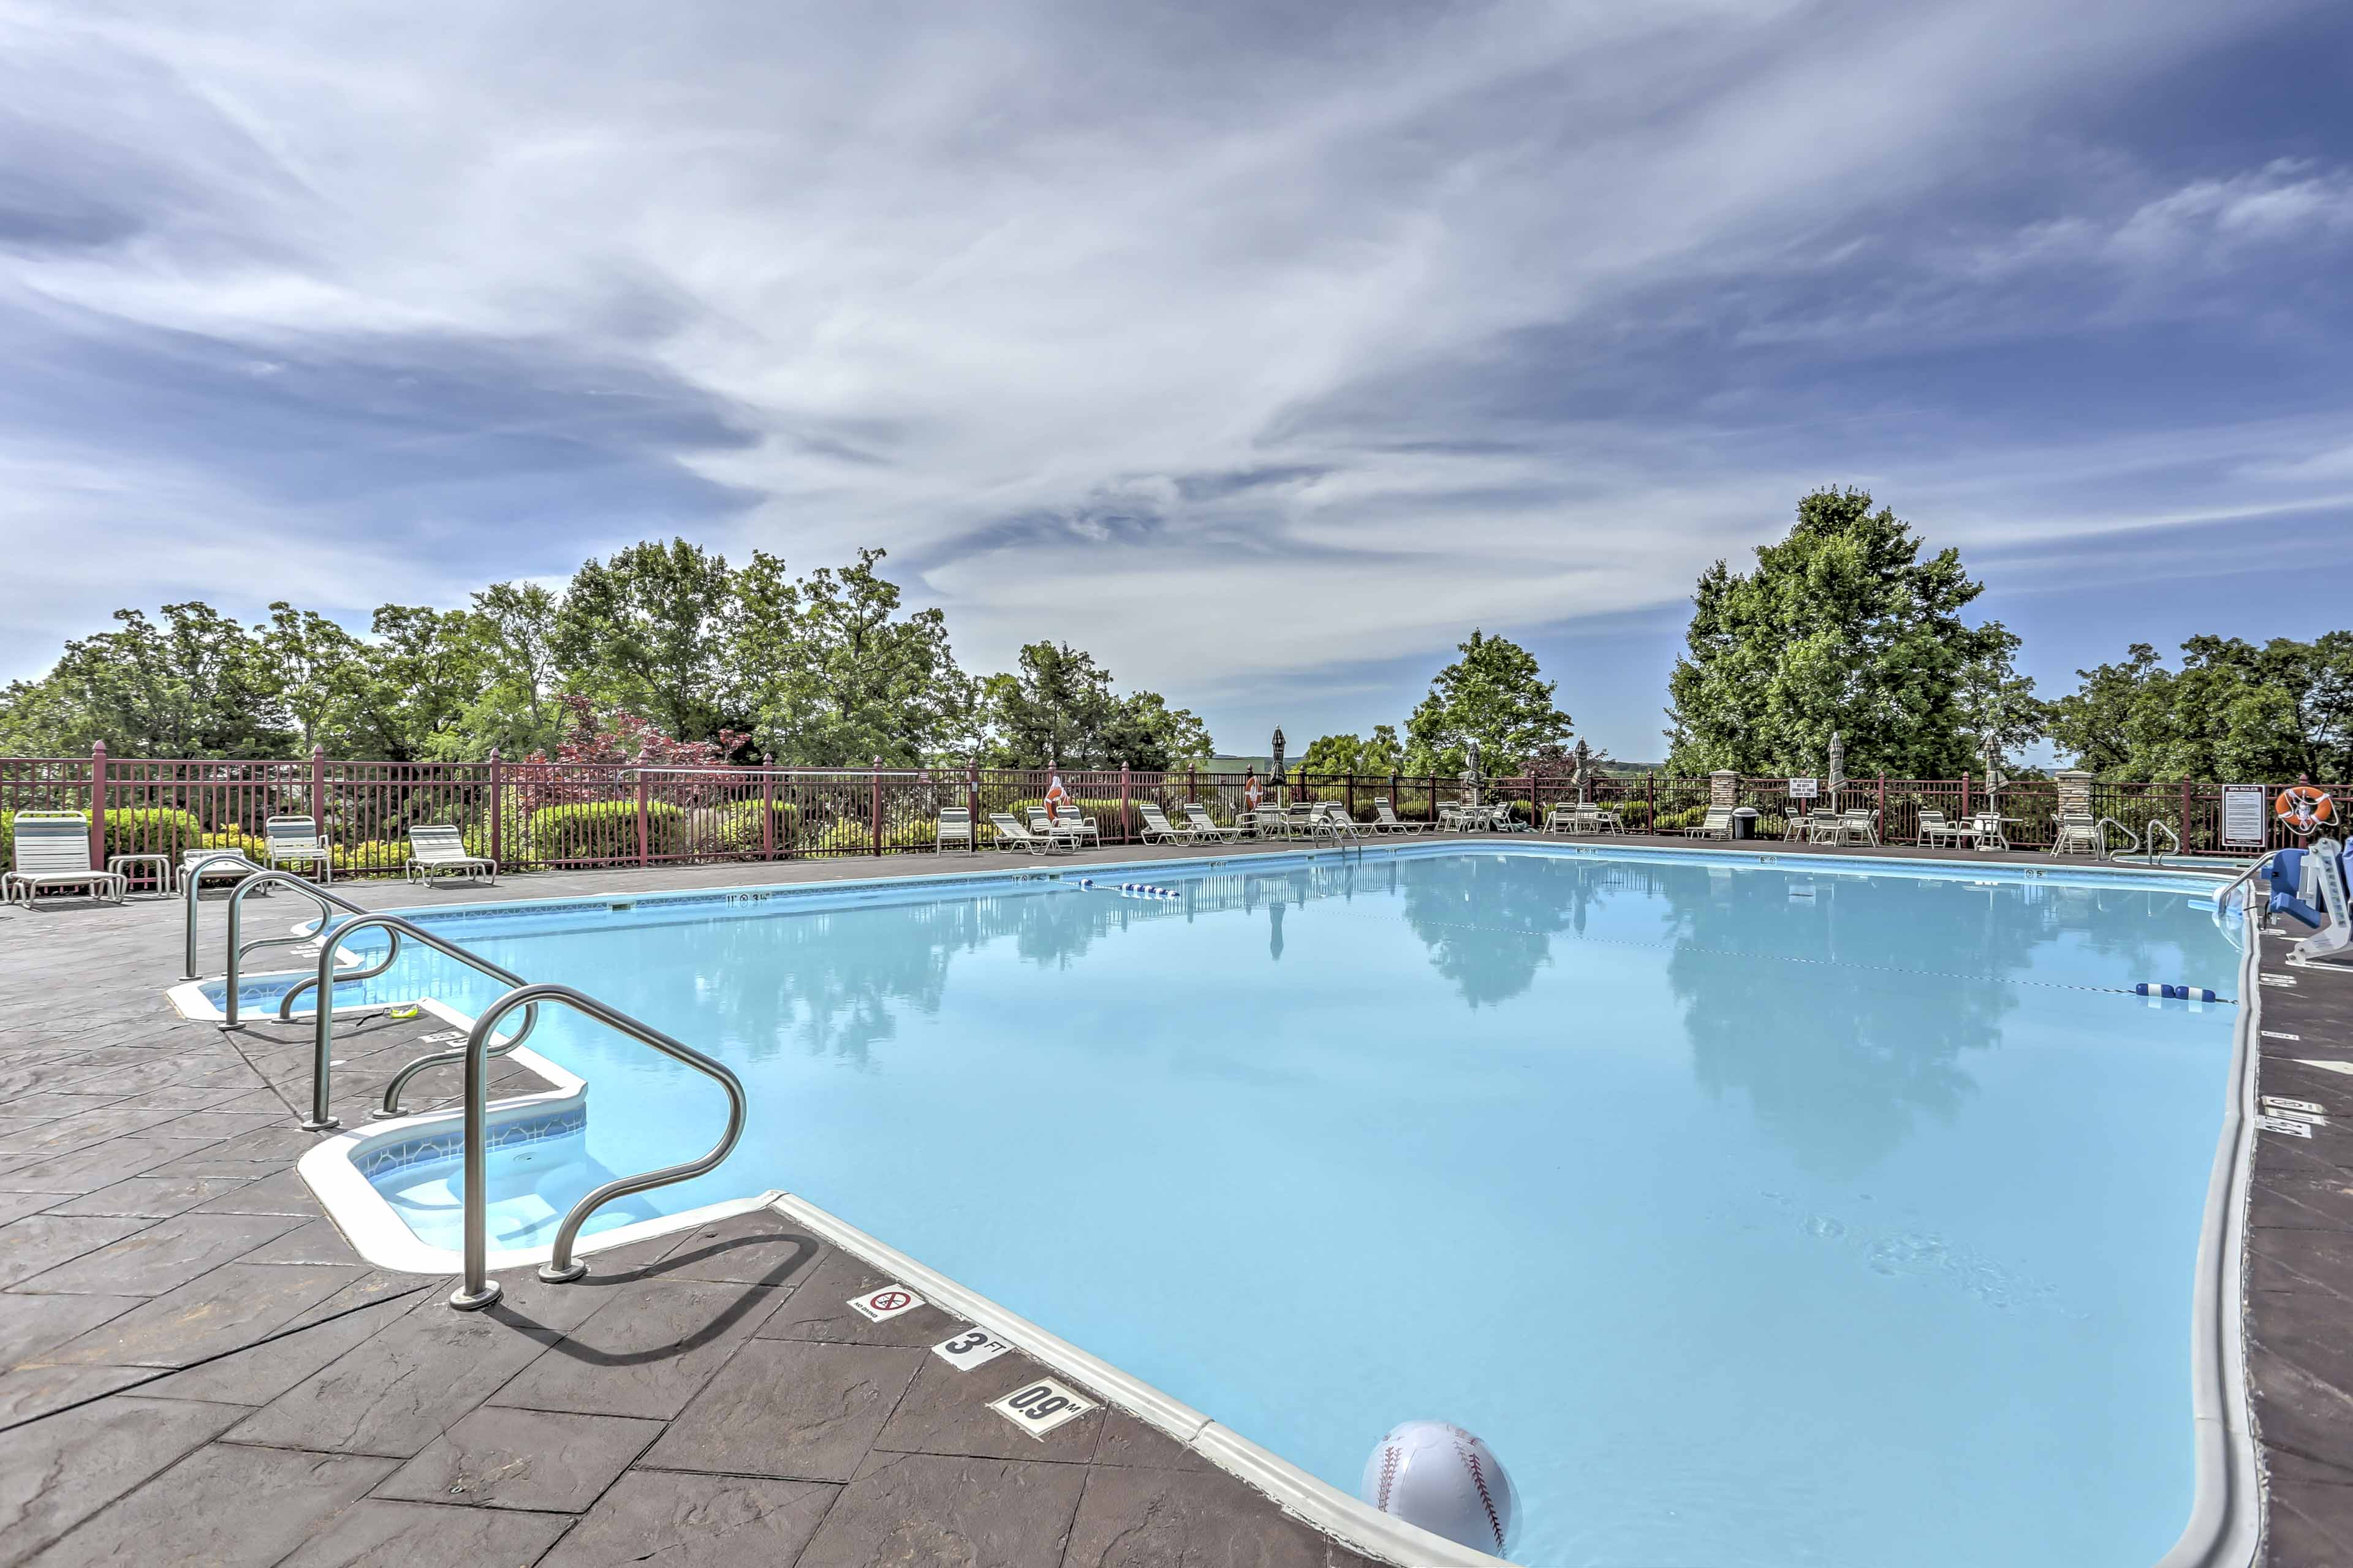 Head to the community pool for a day of fun.